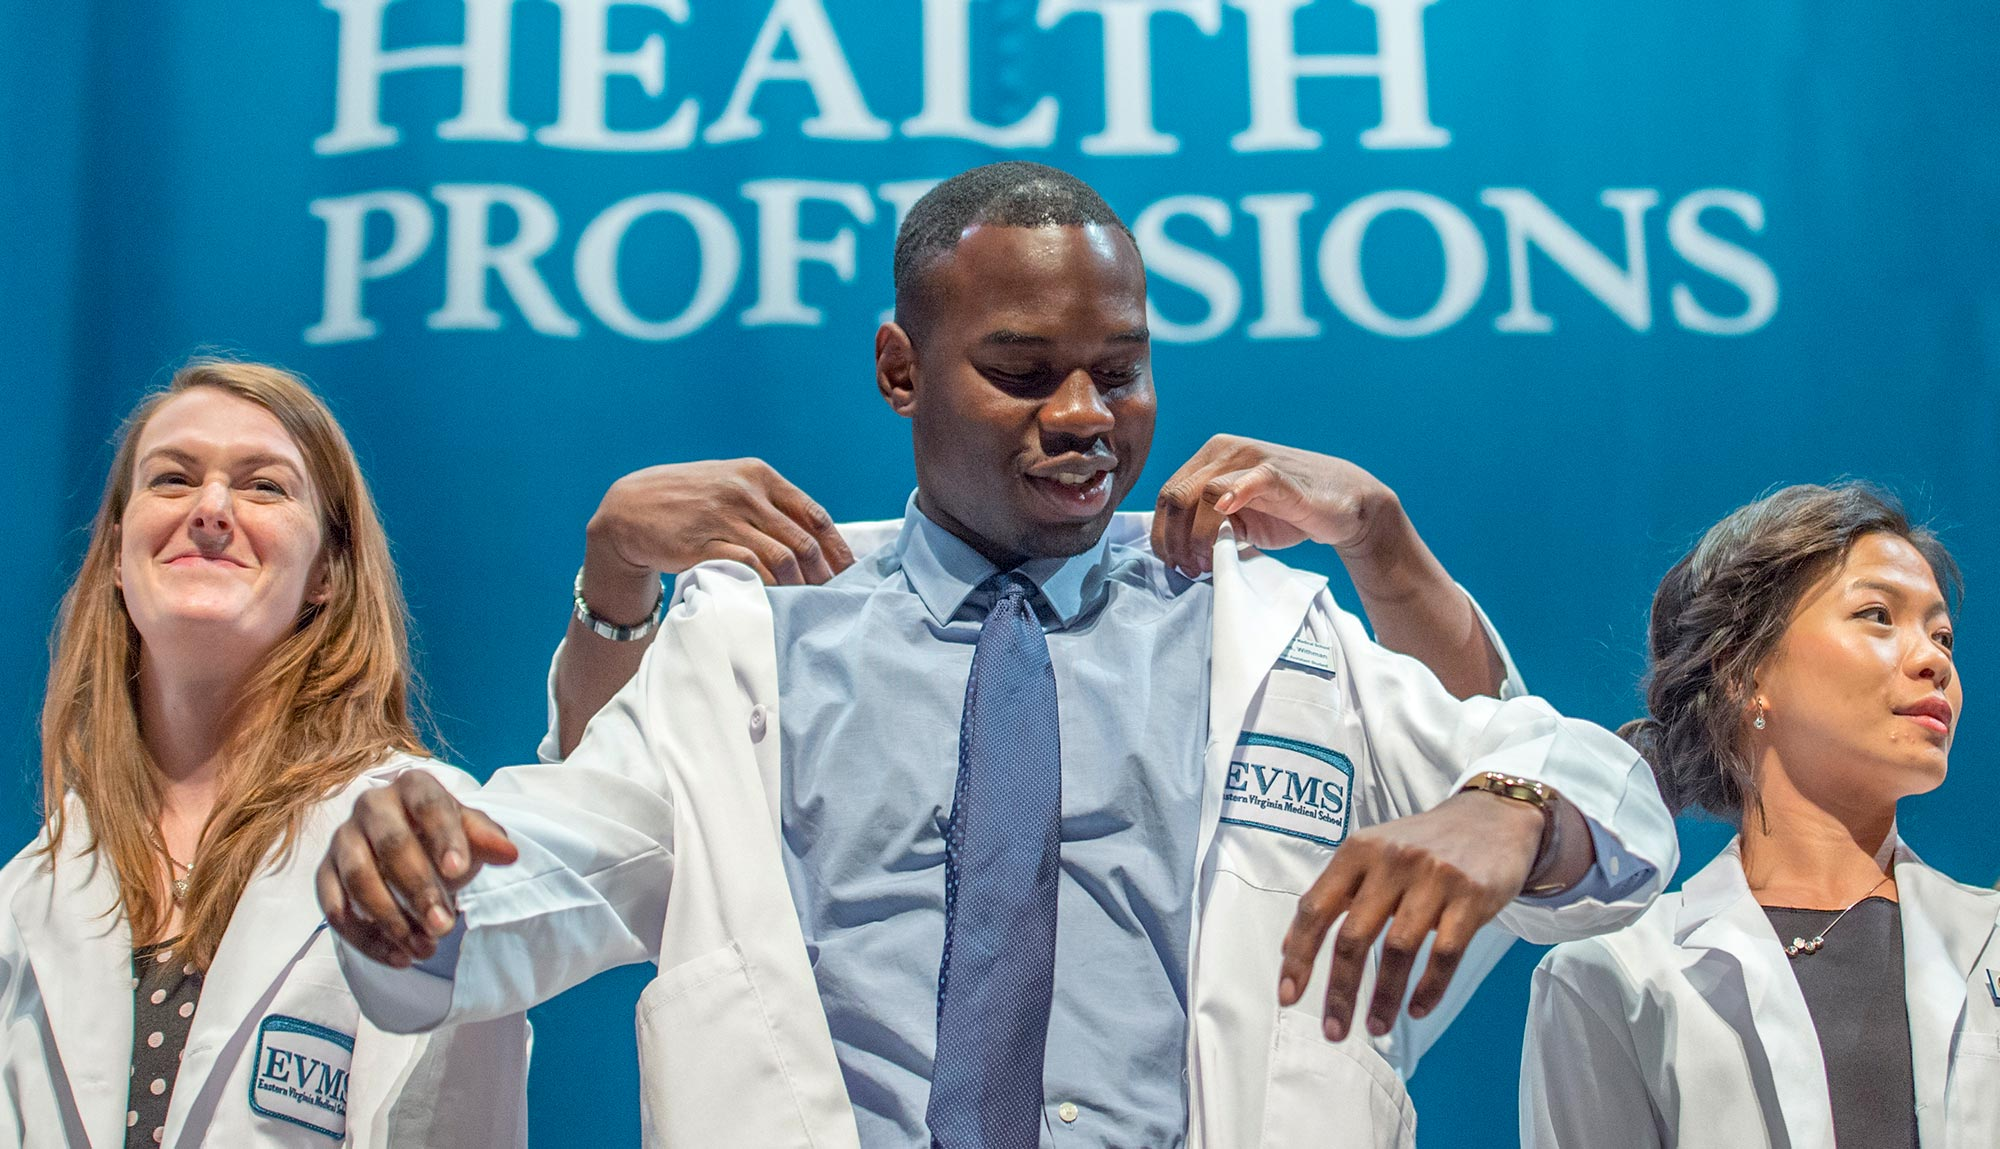 A PA student puts on his white coat during the PA White Coat Ceremony, signifying his transition from student to practitioner.